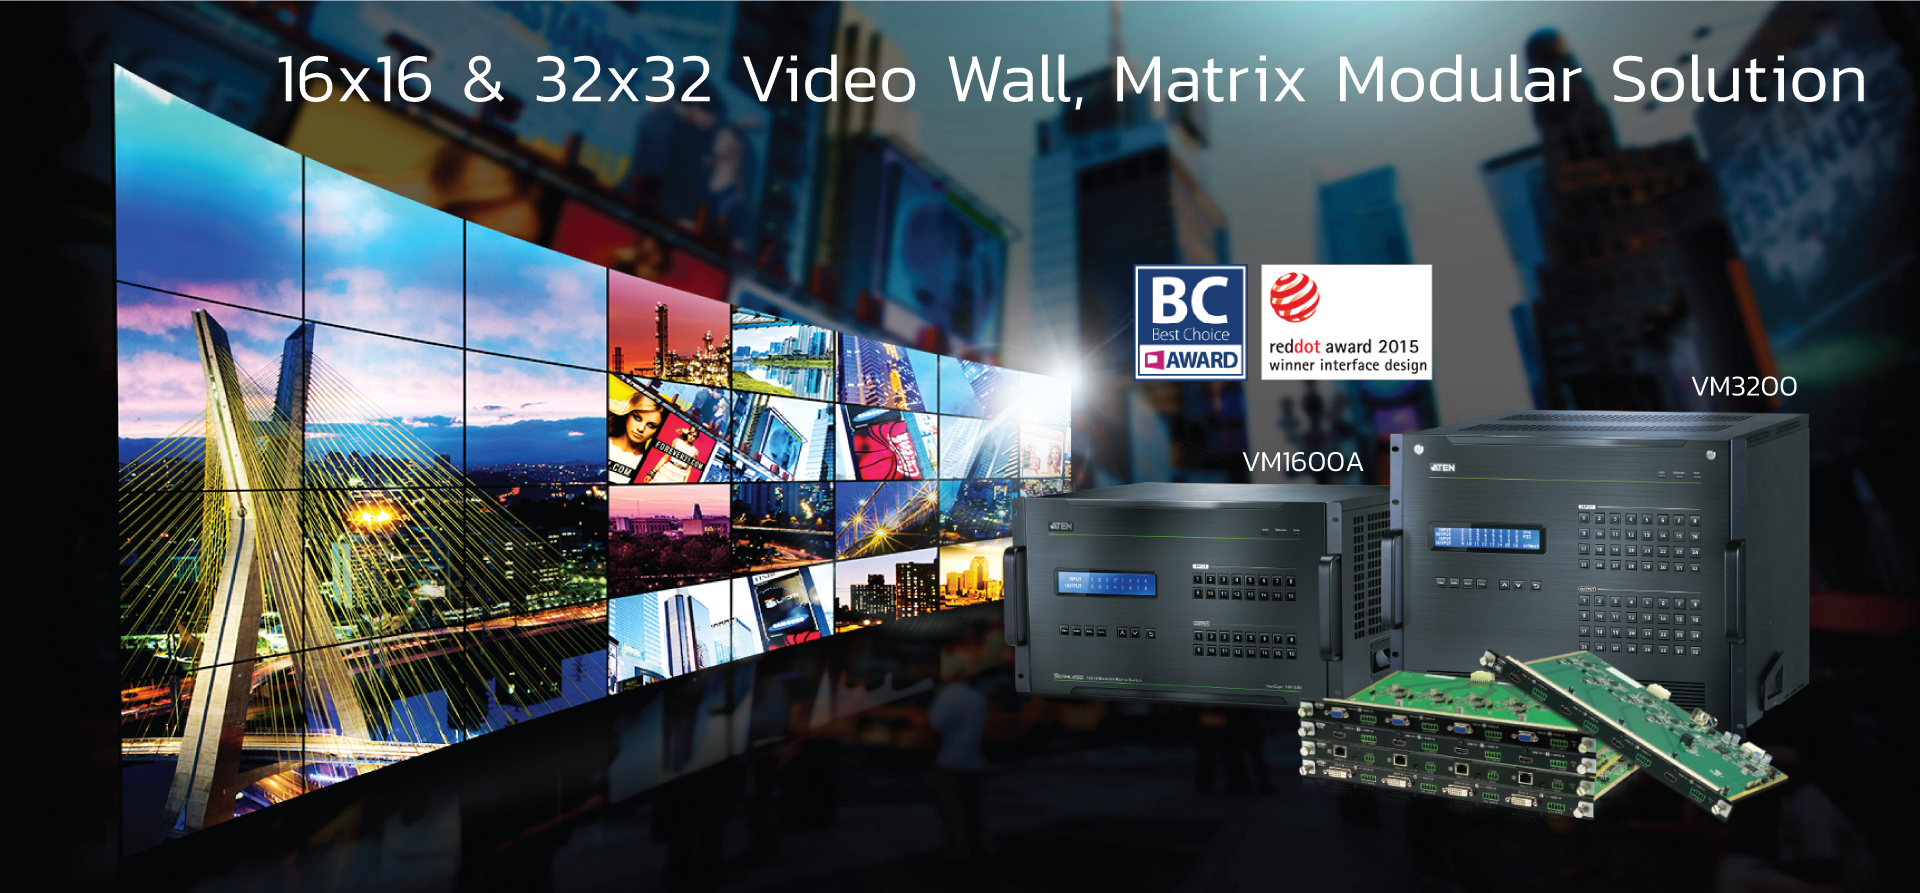 Video wall & modular Matrix solution